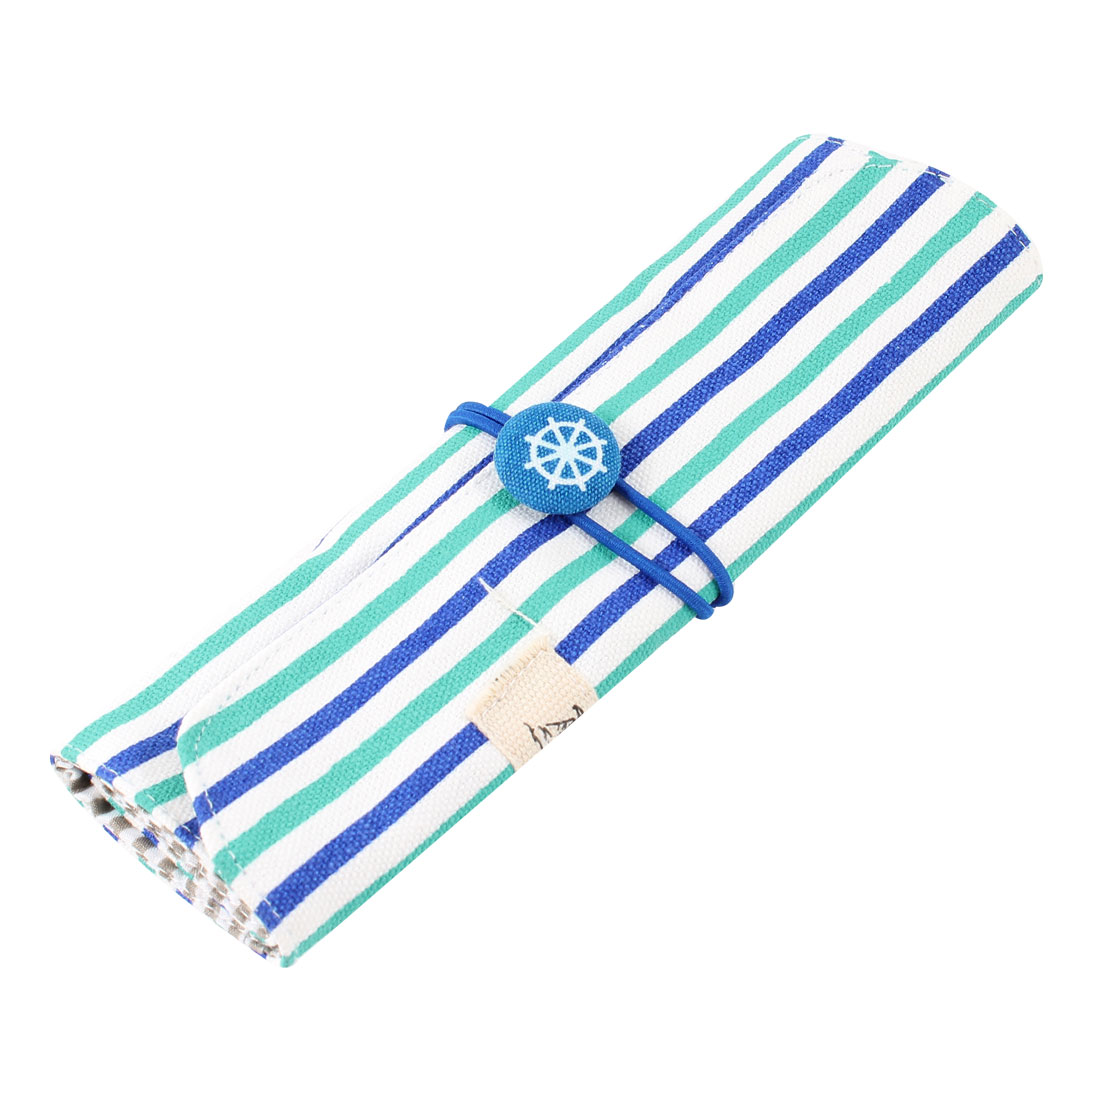 Stripe Print Folding Stationery Drafting Tool Pencil Holder Bag Blue White Green